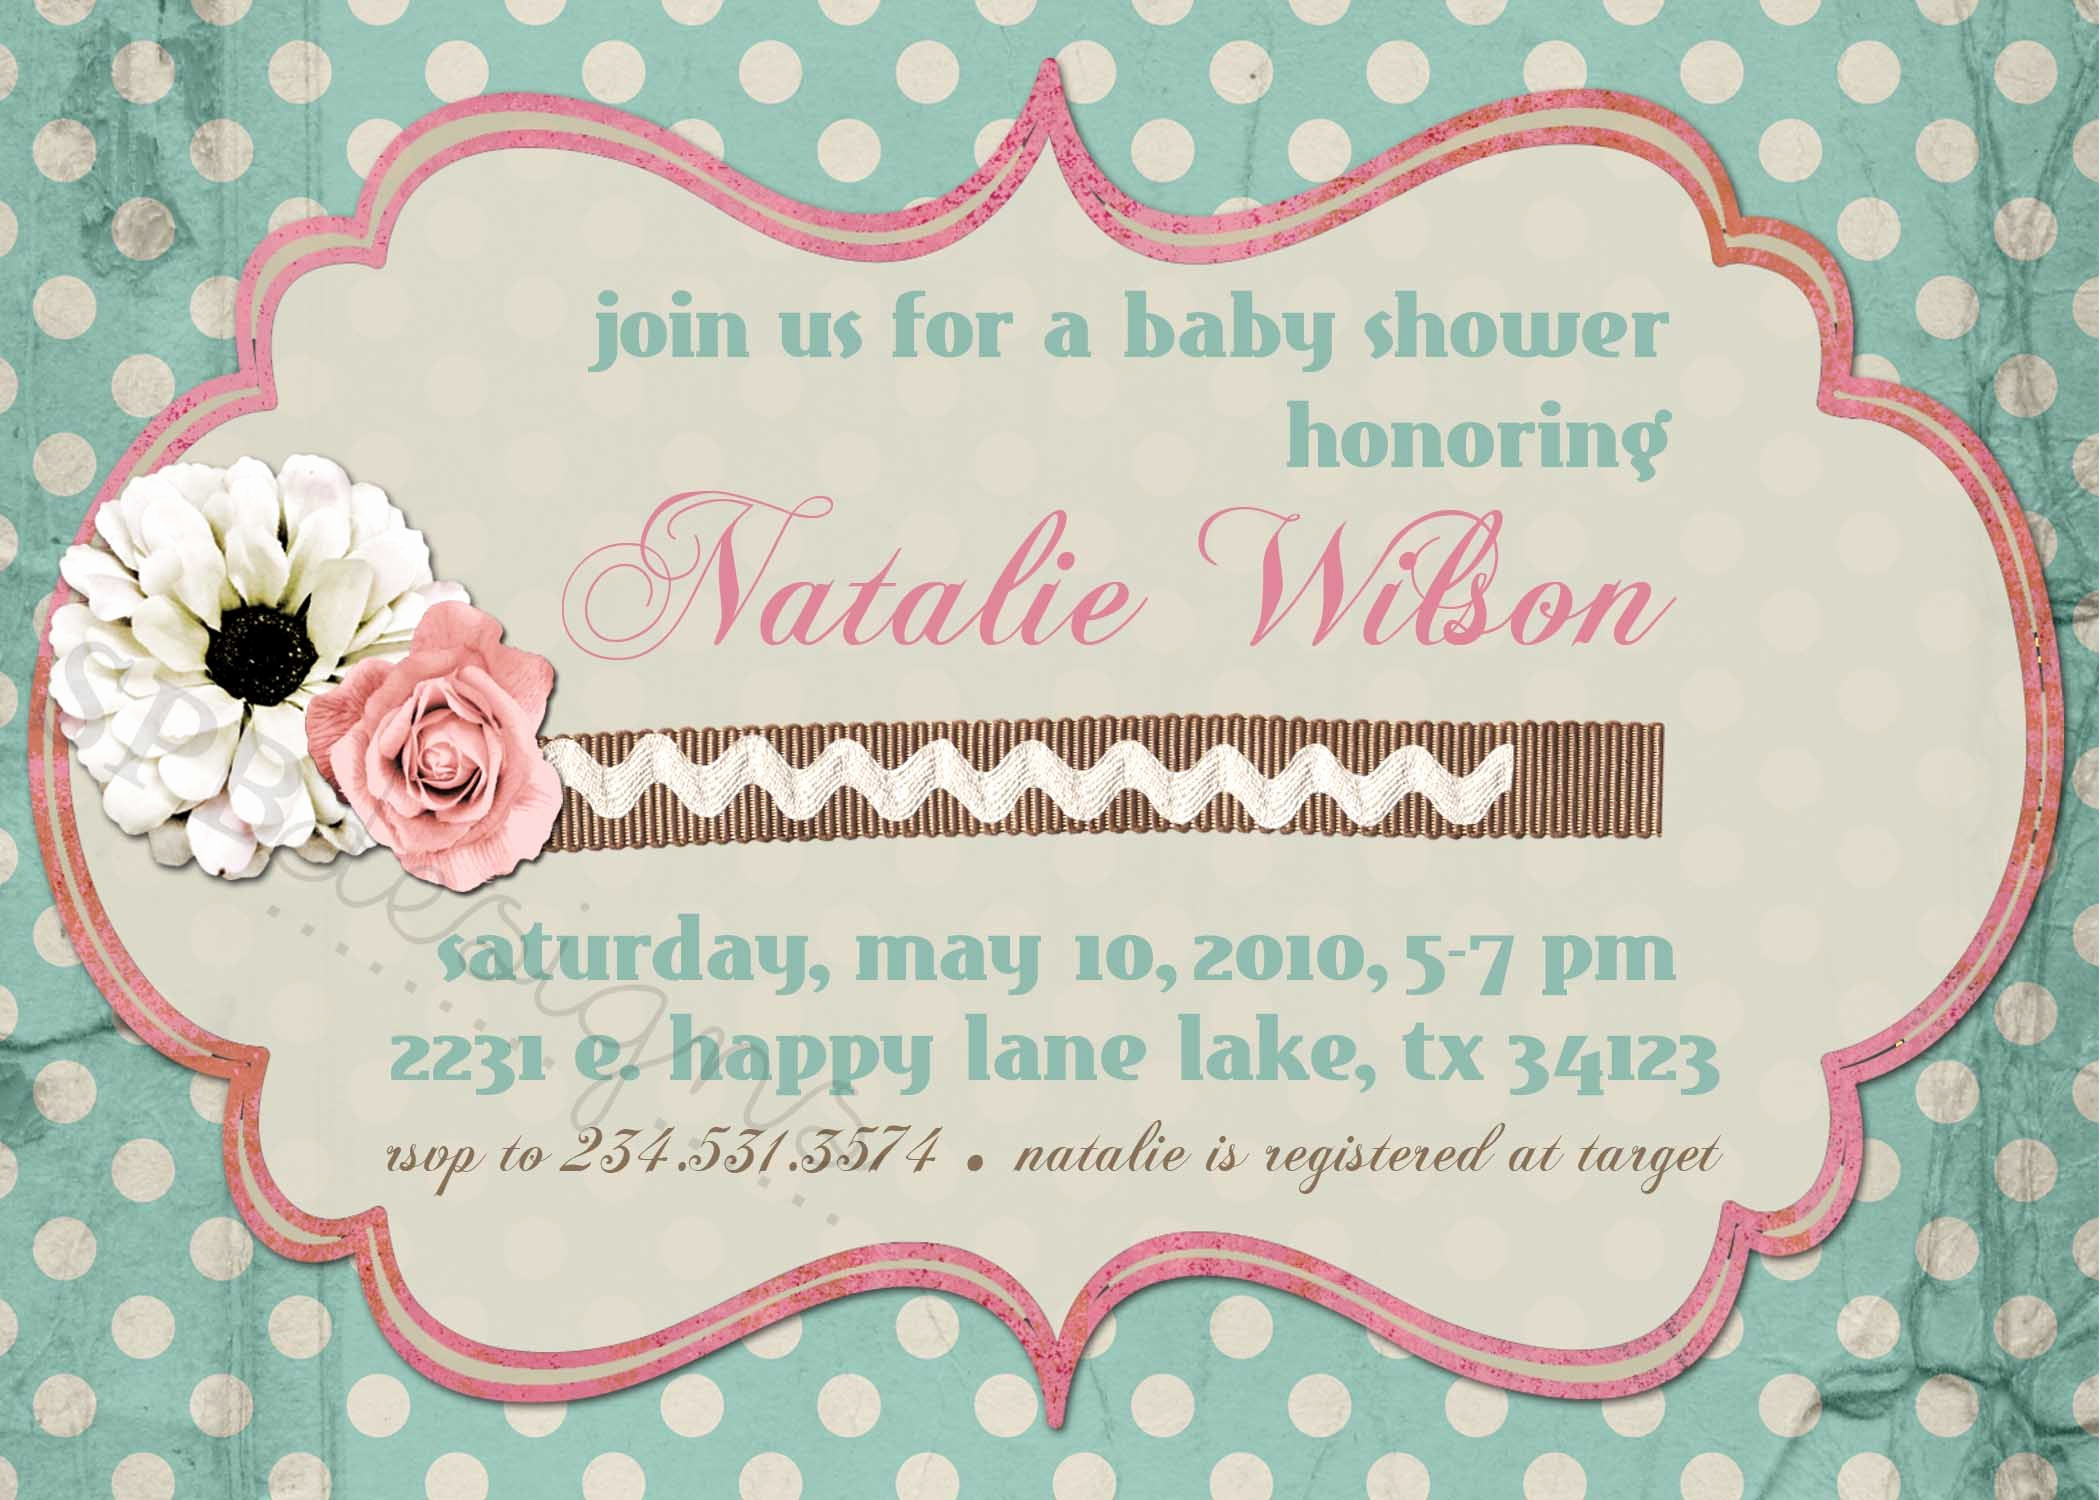 Shabby Chic Baby Shower Invitation New Shabby Chic Baby or Bridal Shower Invitation